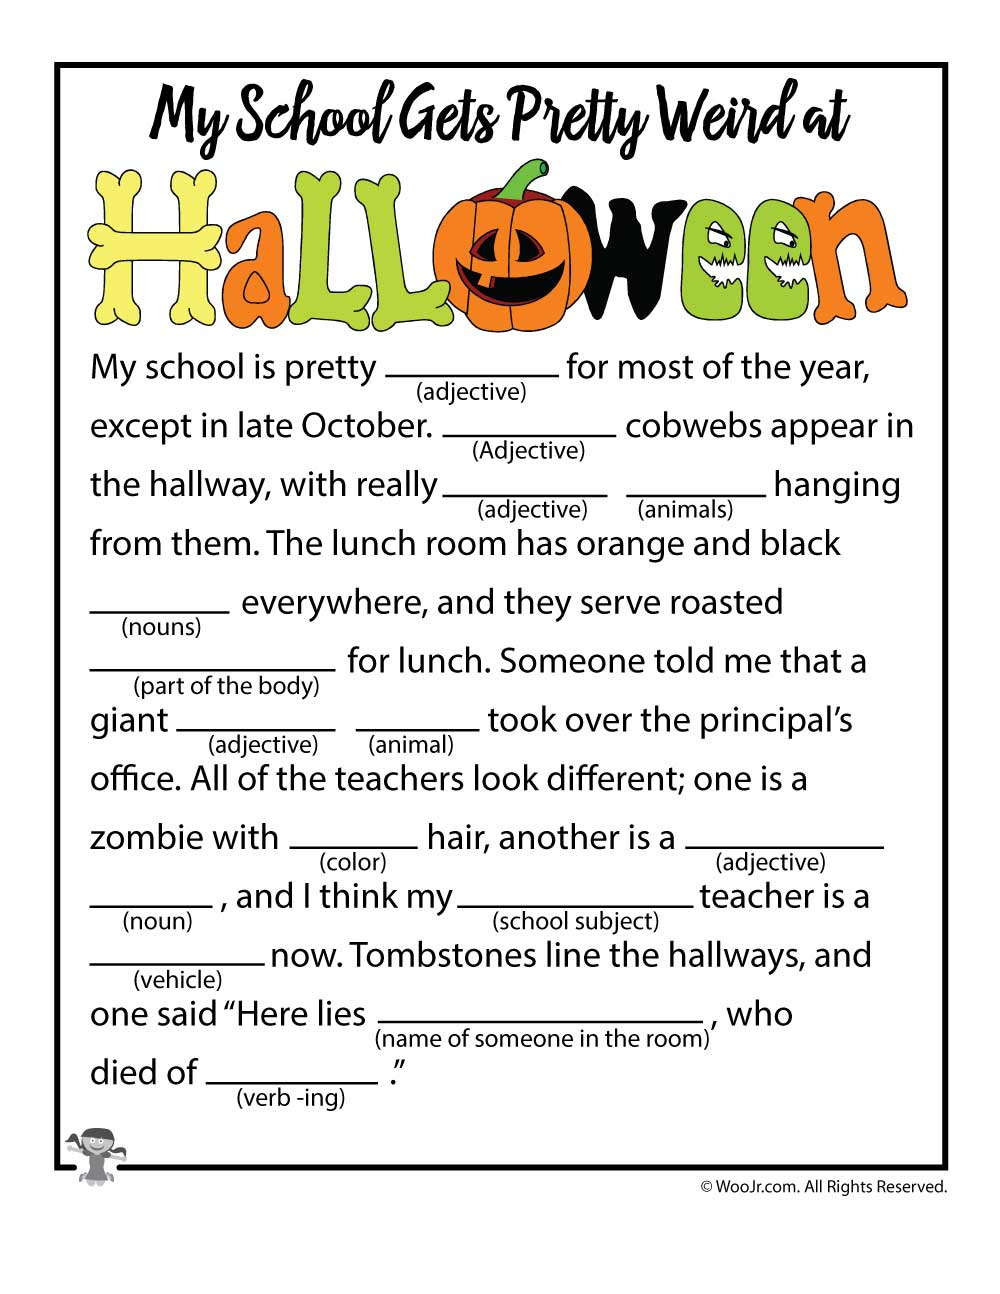 Priceless image in free printable mad libs for middle school students